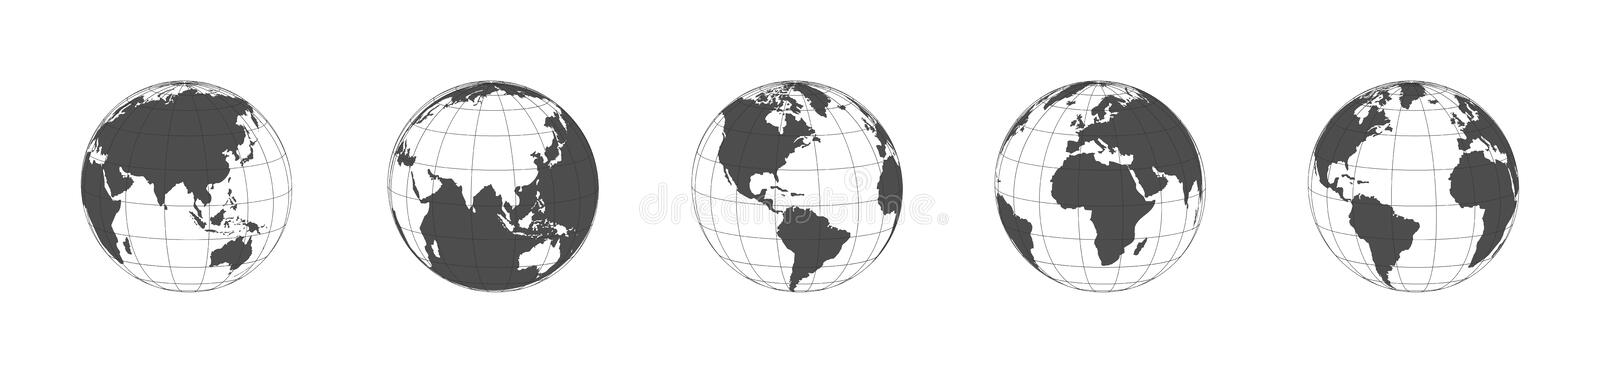 Earth globe icons set in a row. Panorama view. Earth globe dark icons isolated on white background. Earth globe in flat design royalty free illustration